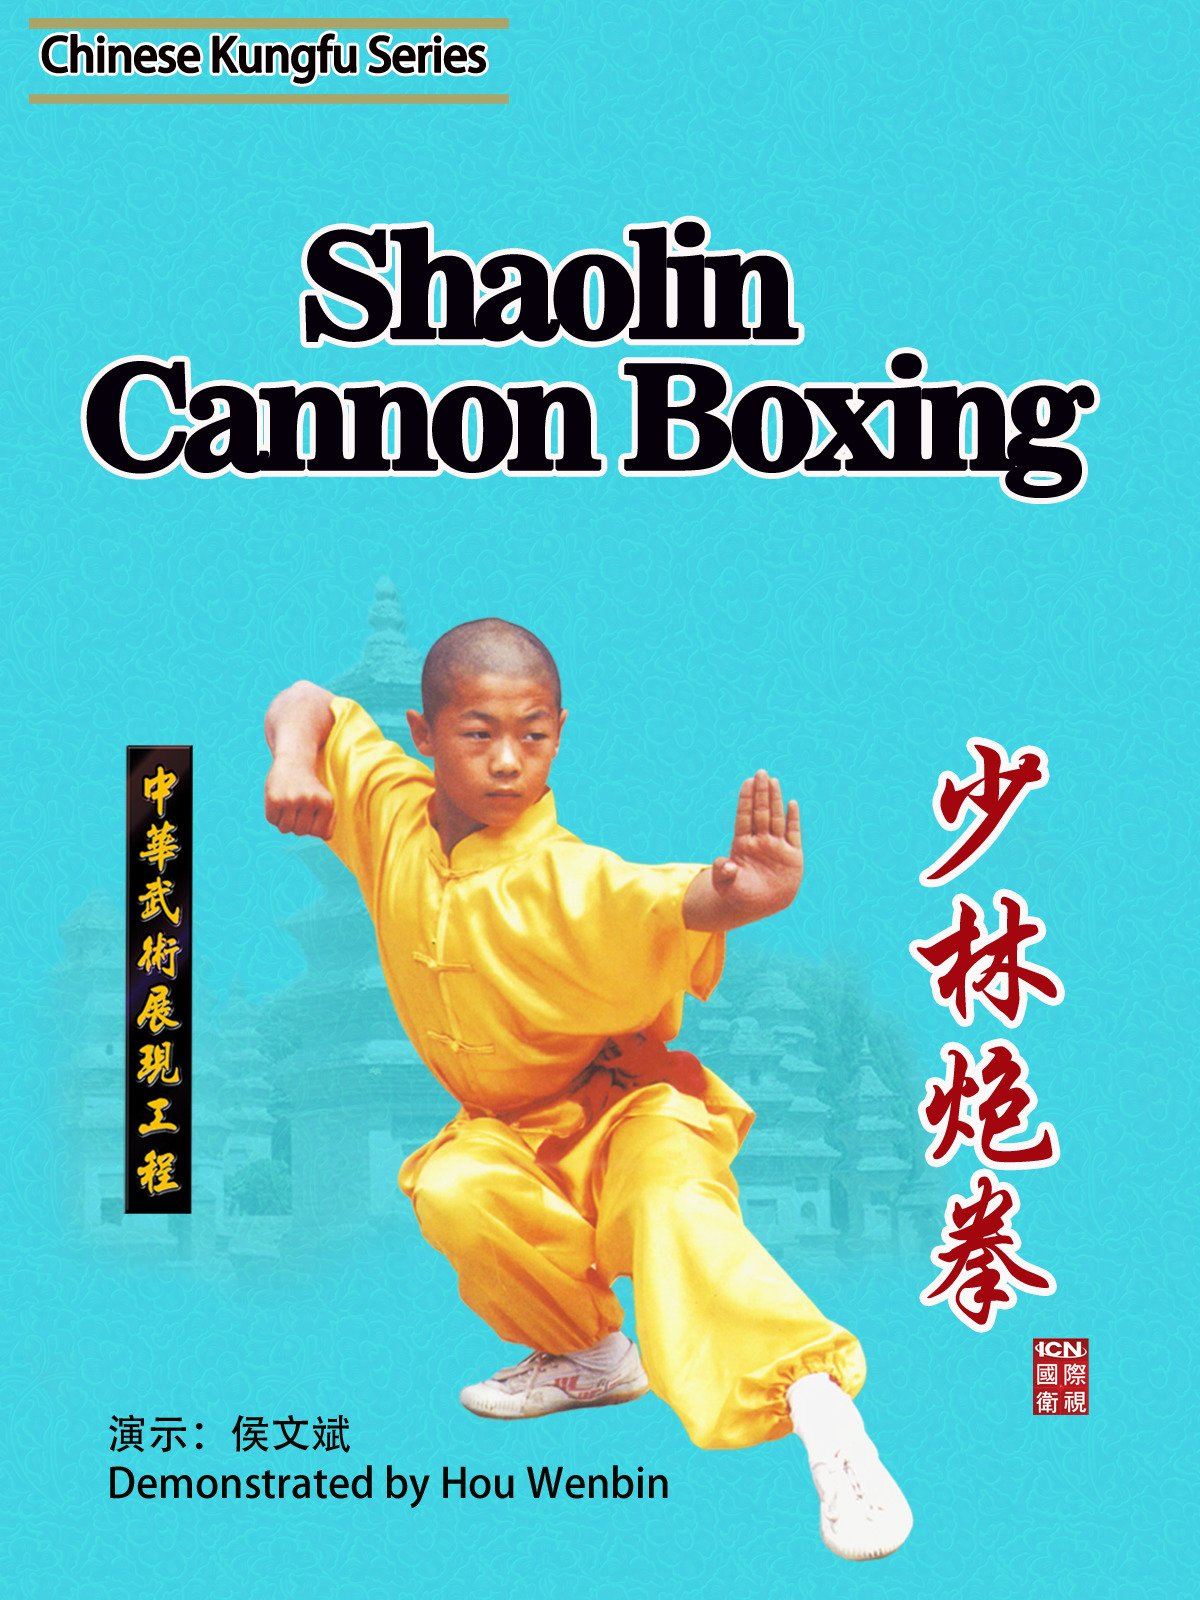 Chinese Kungfu Series-Shaolin Cannon Boxing (Demonstrated by Hou Wenbin)